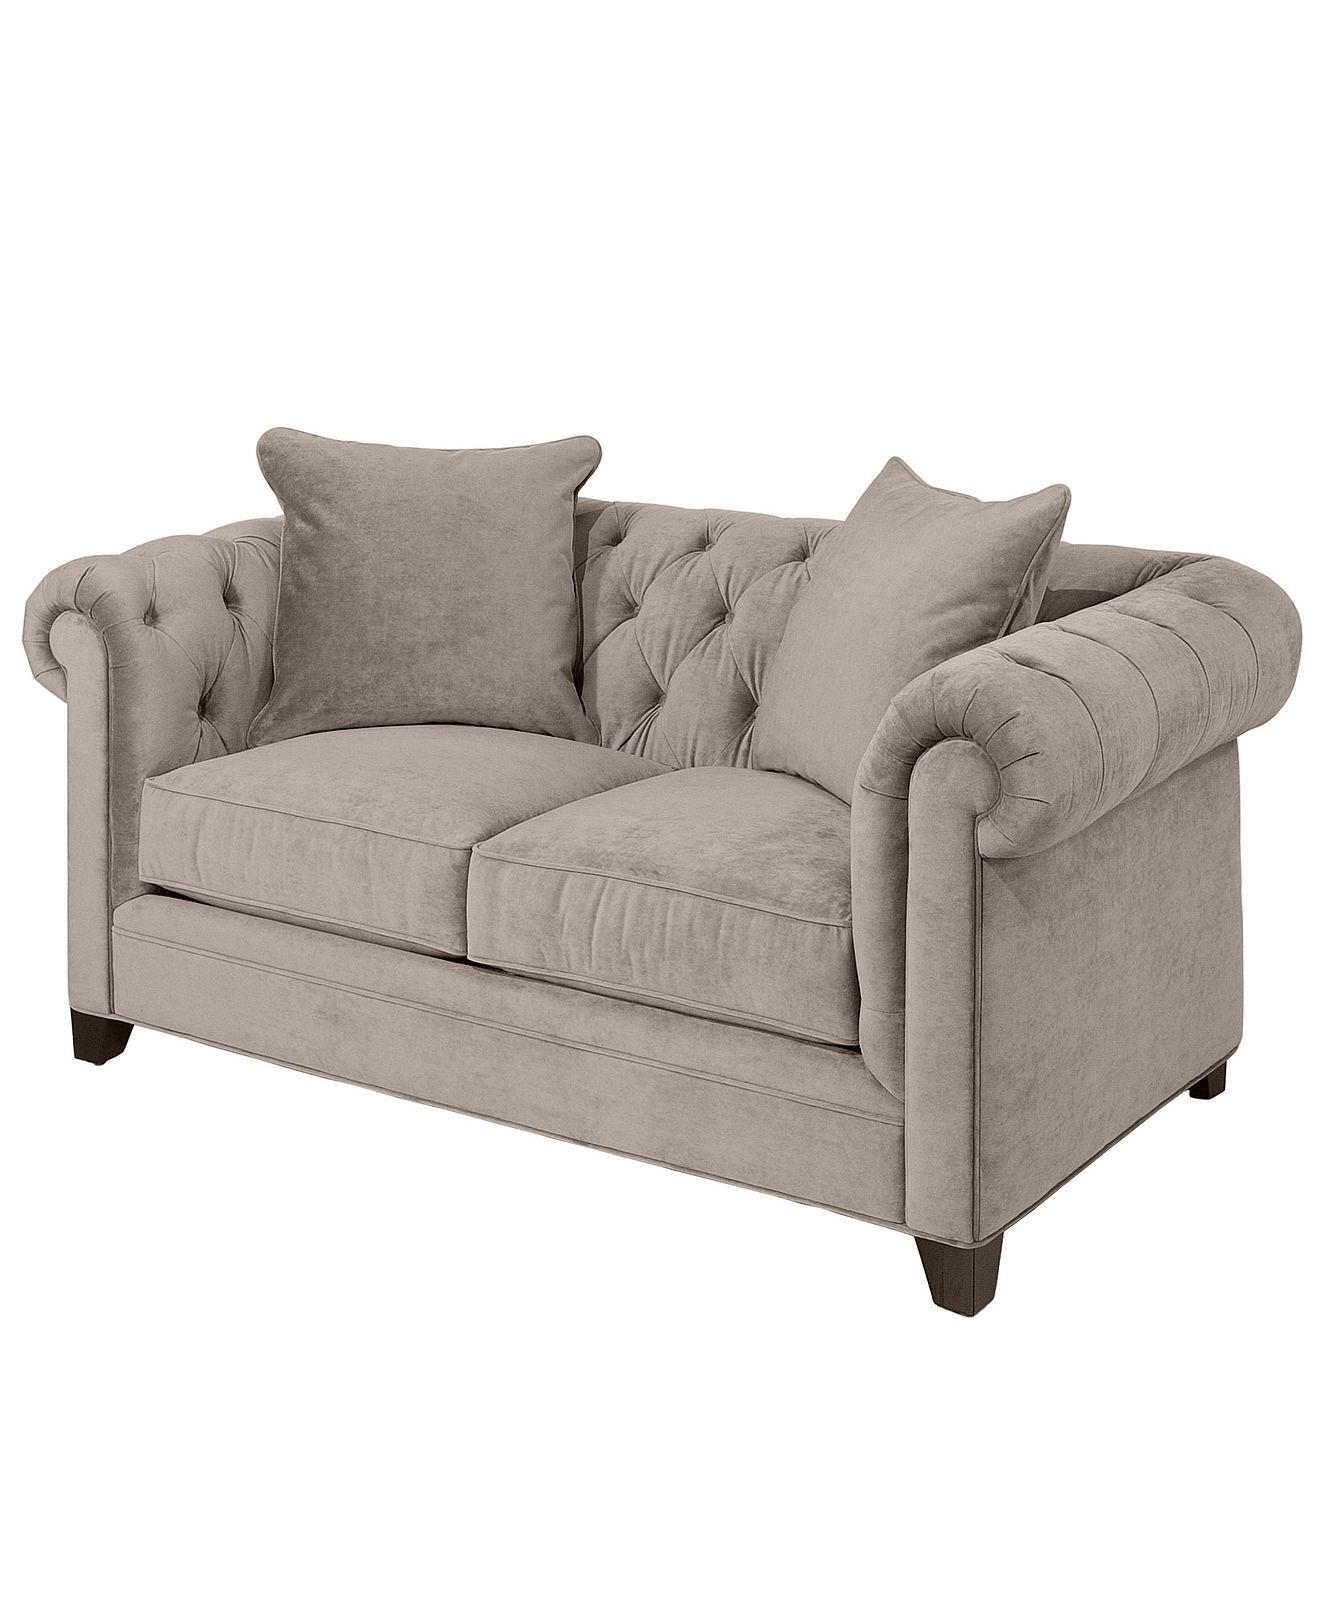 Swell Saybridge 68 Loveseat Created For Macys Homely Love Pabps2019 Chair Design Images Pabps2019Com